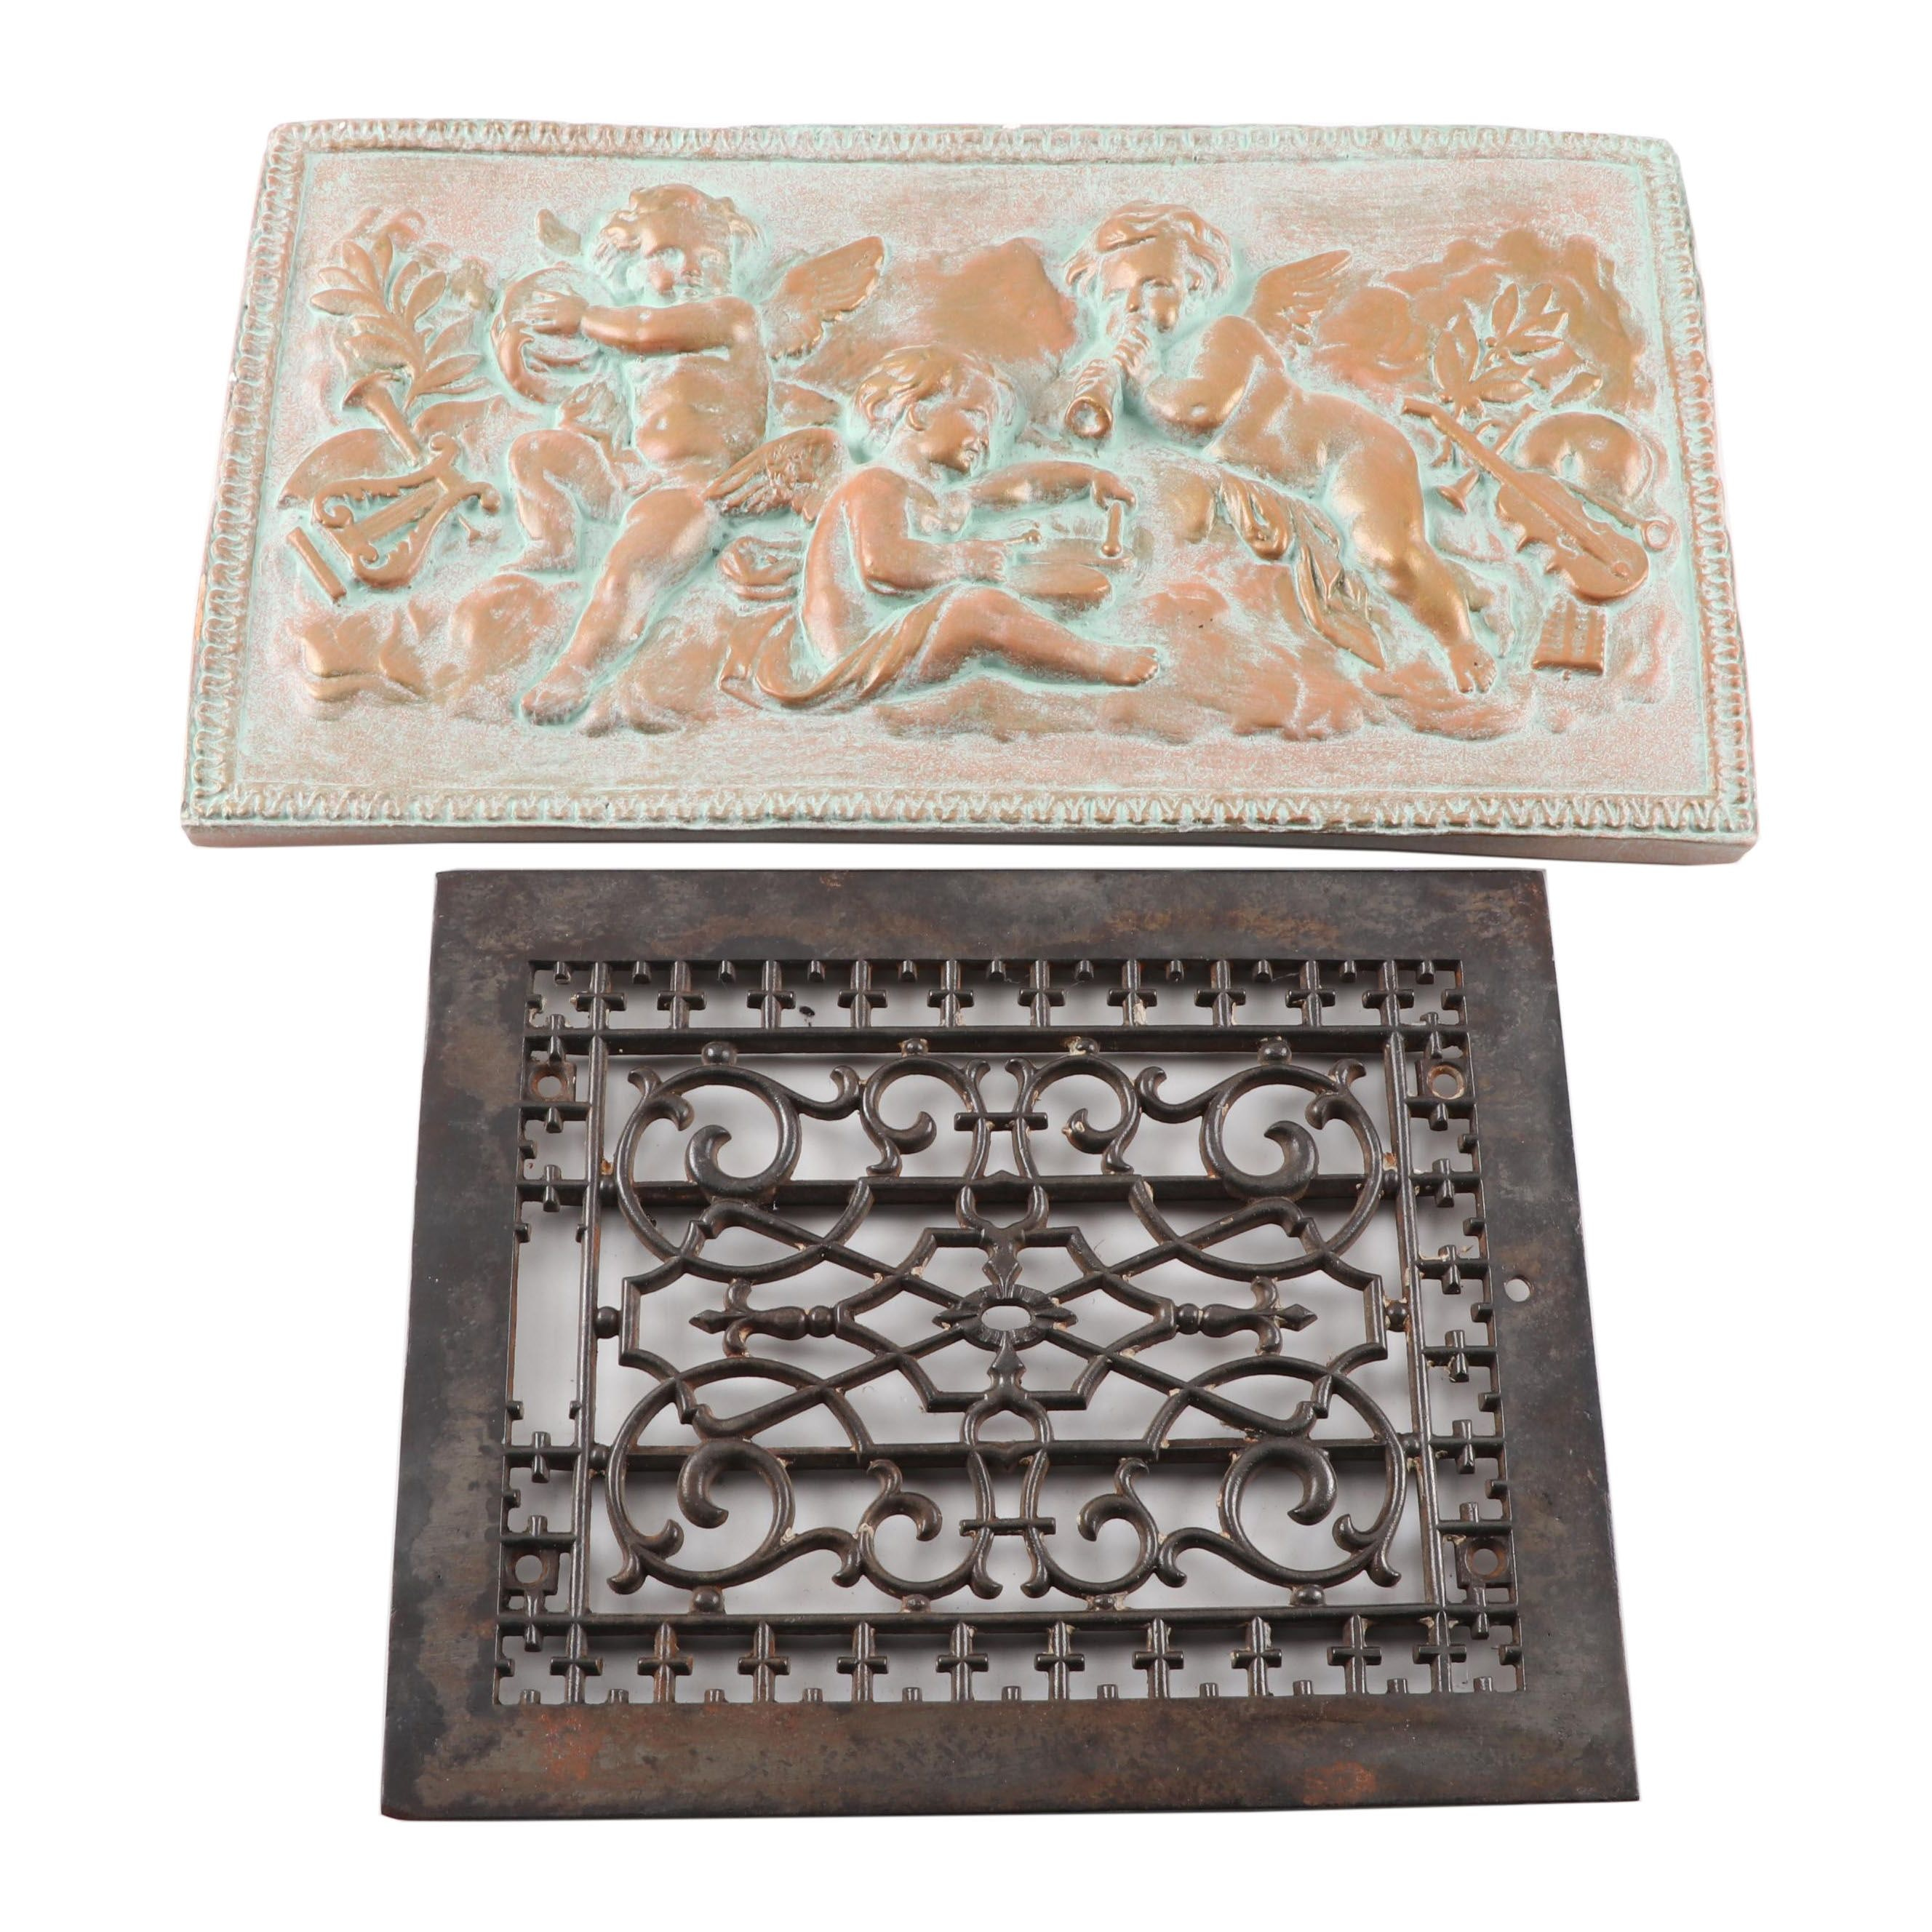 Architectural Cast Iron Grate and Verdigris and Gilt Putti Wall Plaque